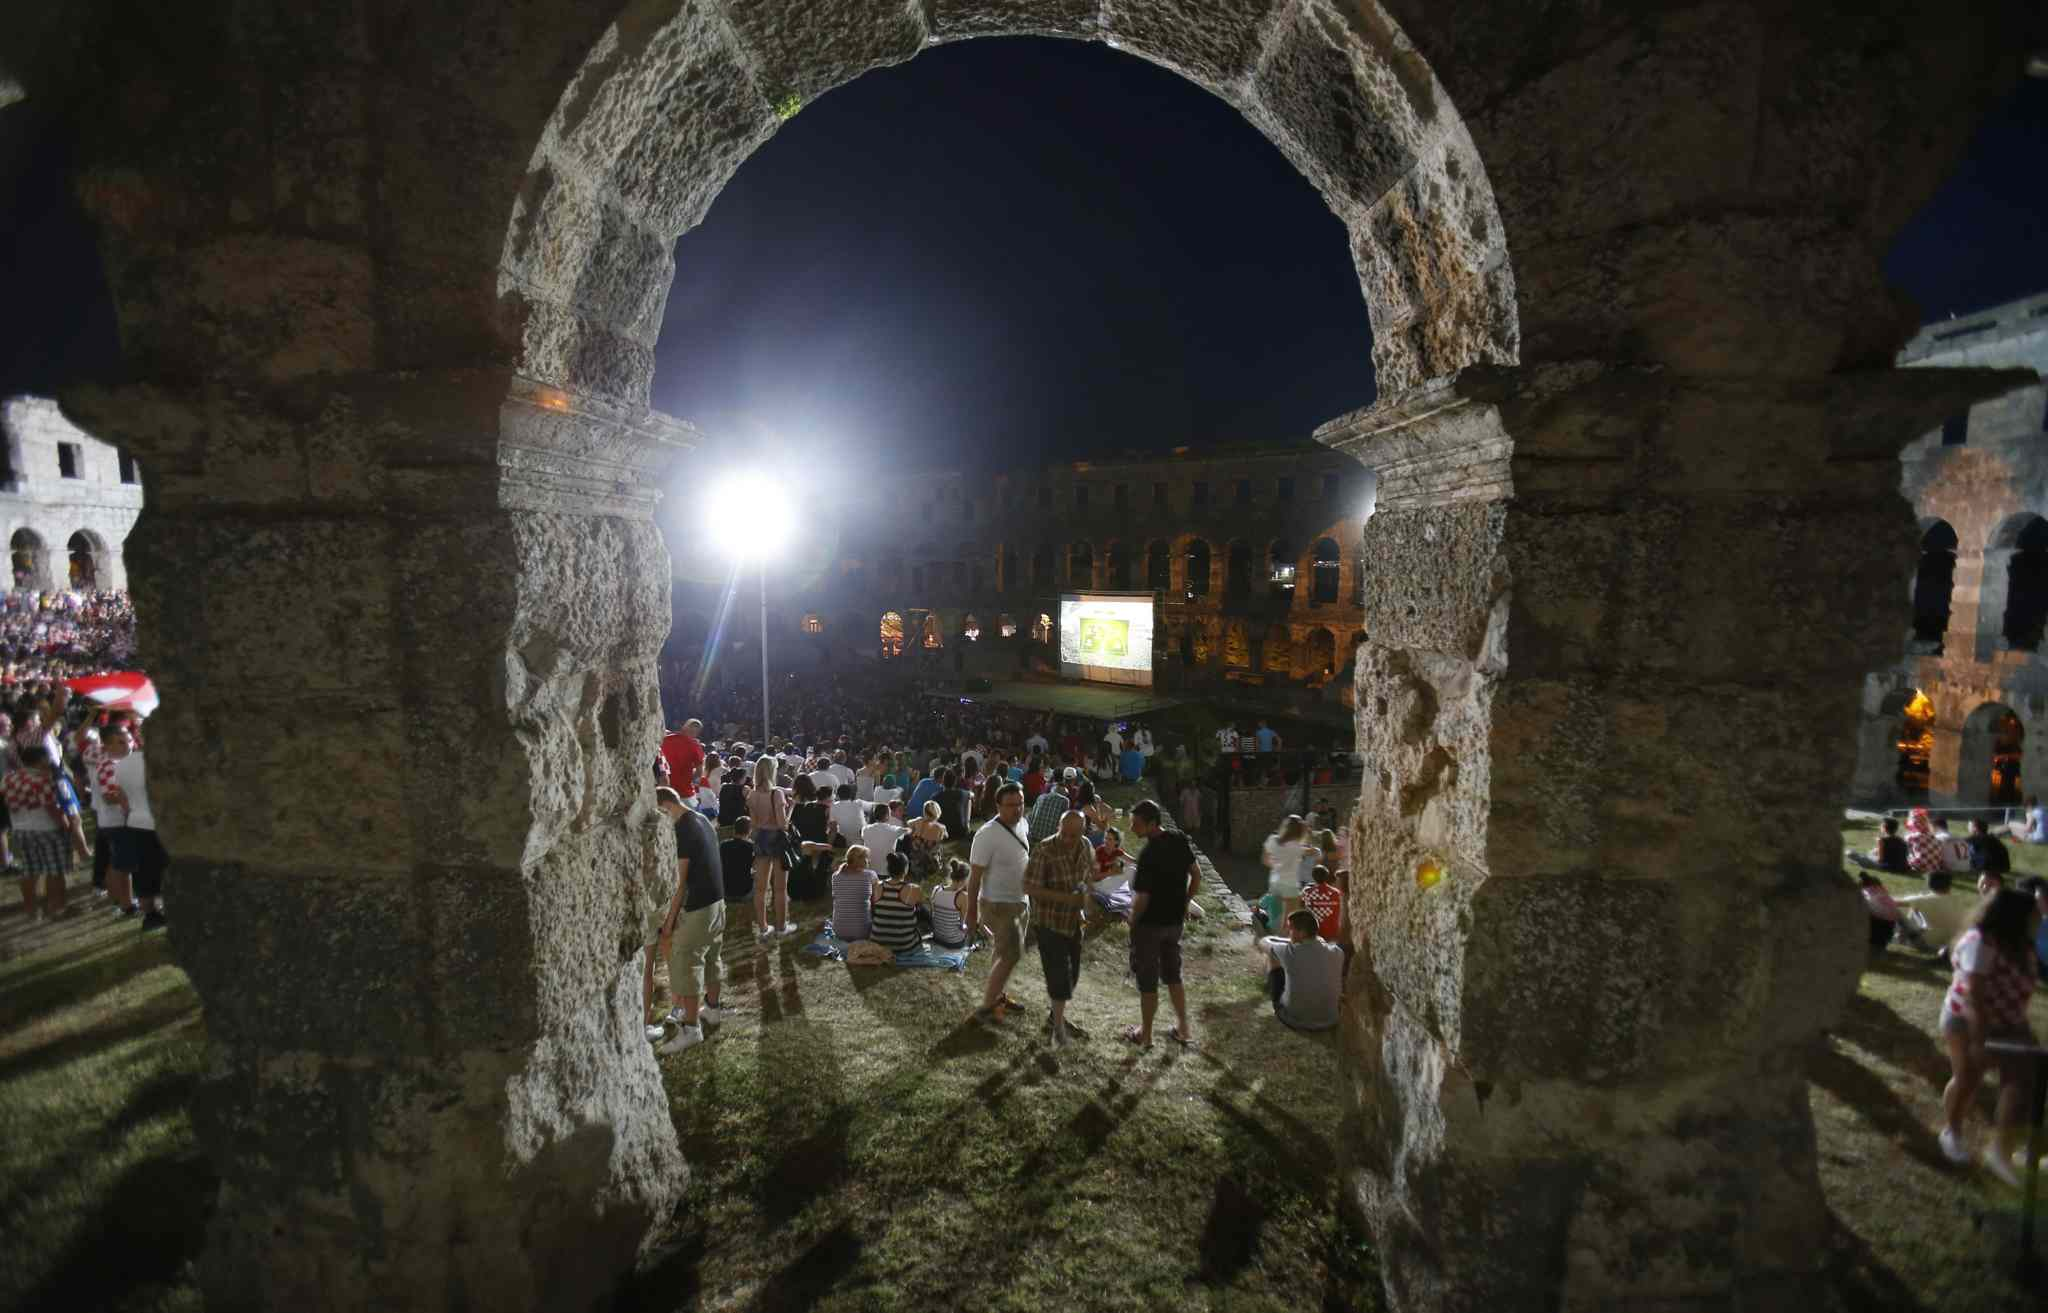 Croatian soccer fans watch the opening game of the World Cup between Brazil and Croatia in the Roman amphitheater in Pula, Croatia on Thursday. Pula's amphitheater is one of best preserved in the world.